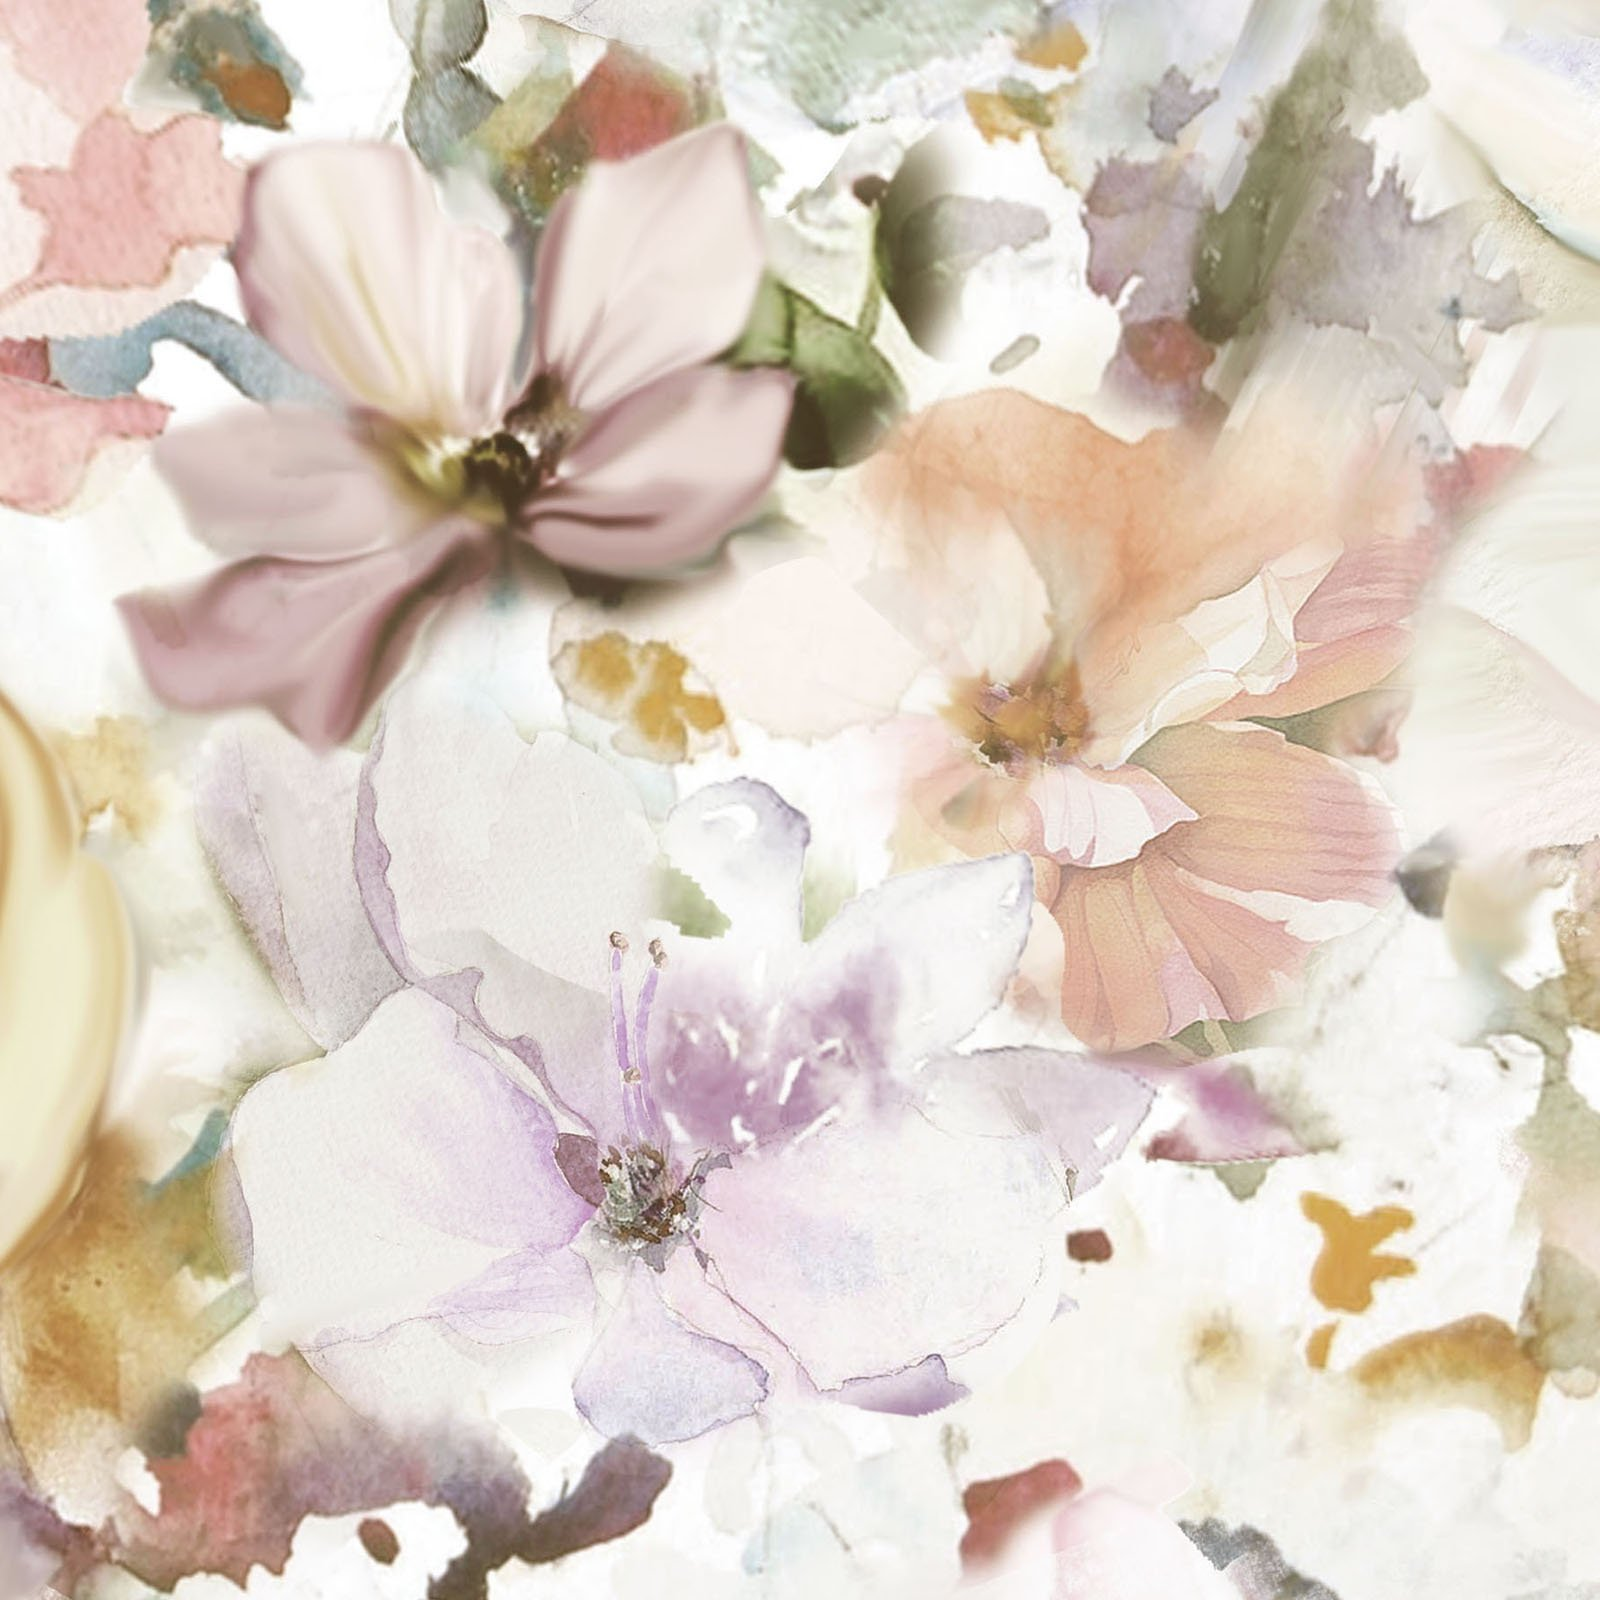 ARAW-4234 P - ARABESQUE 108 WIDE BY P&B BOUTIQUE WATERCOLOR FLORAL PINK